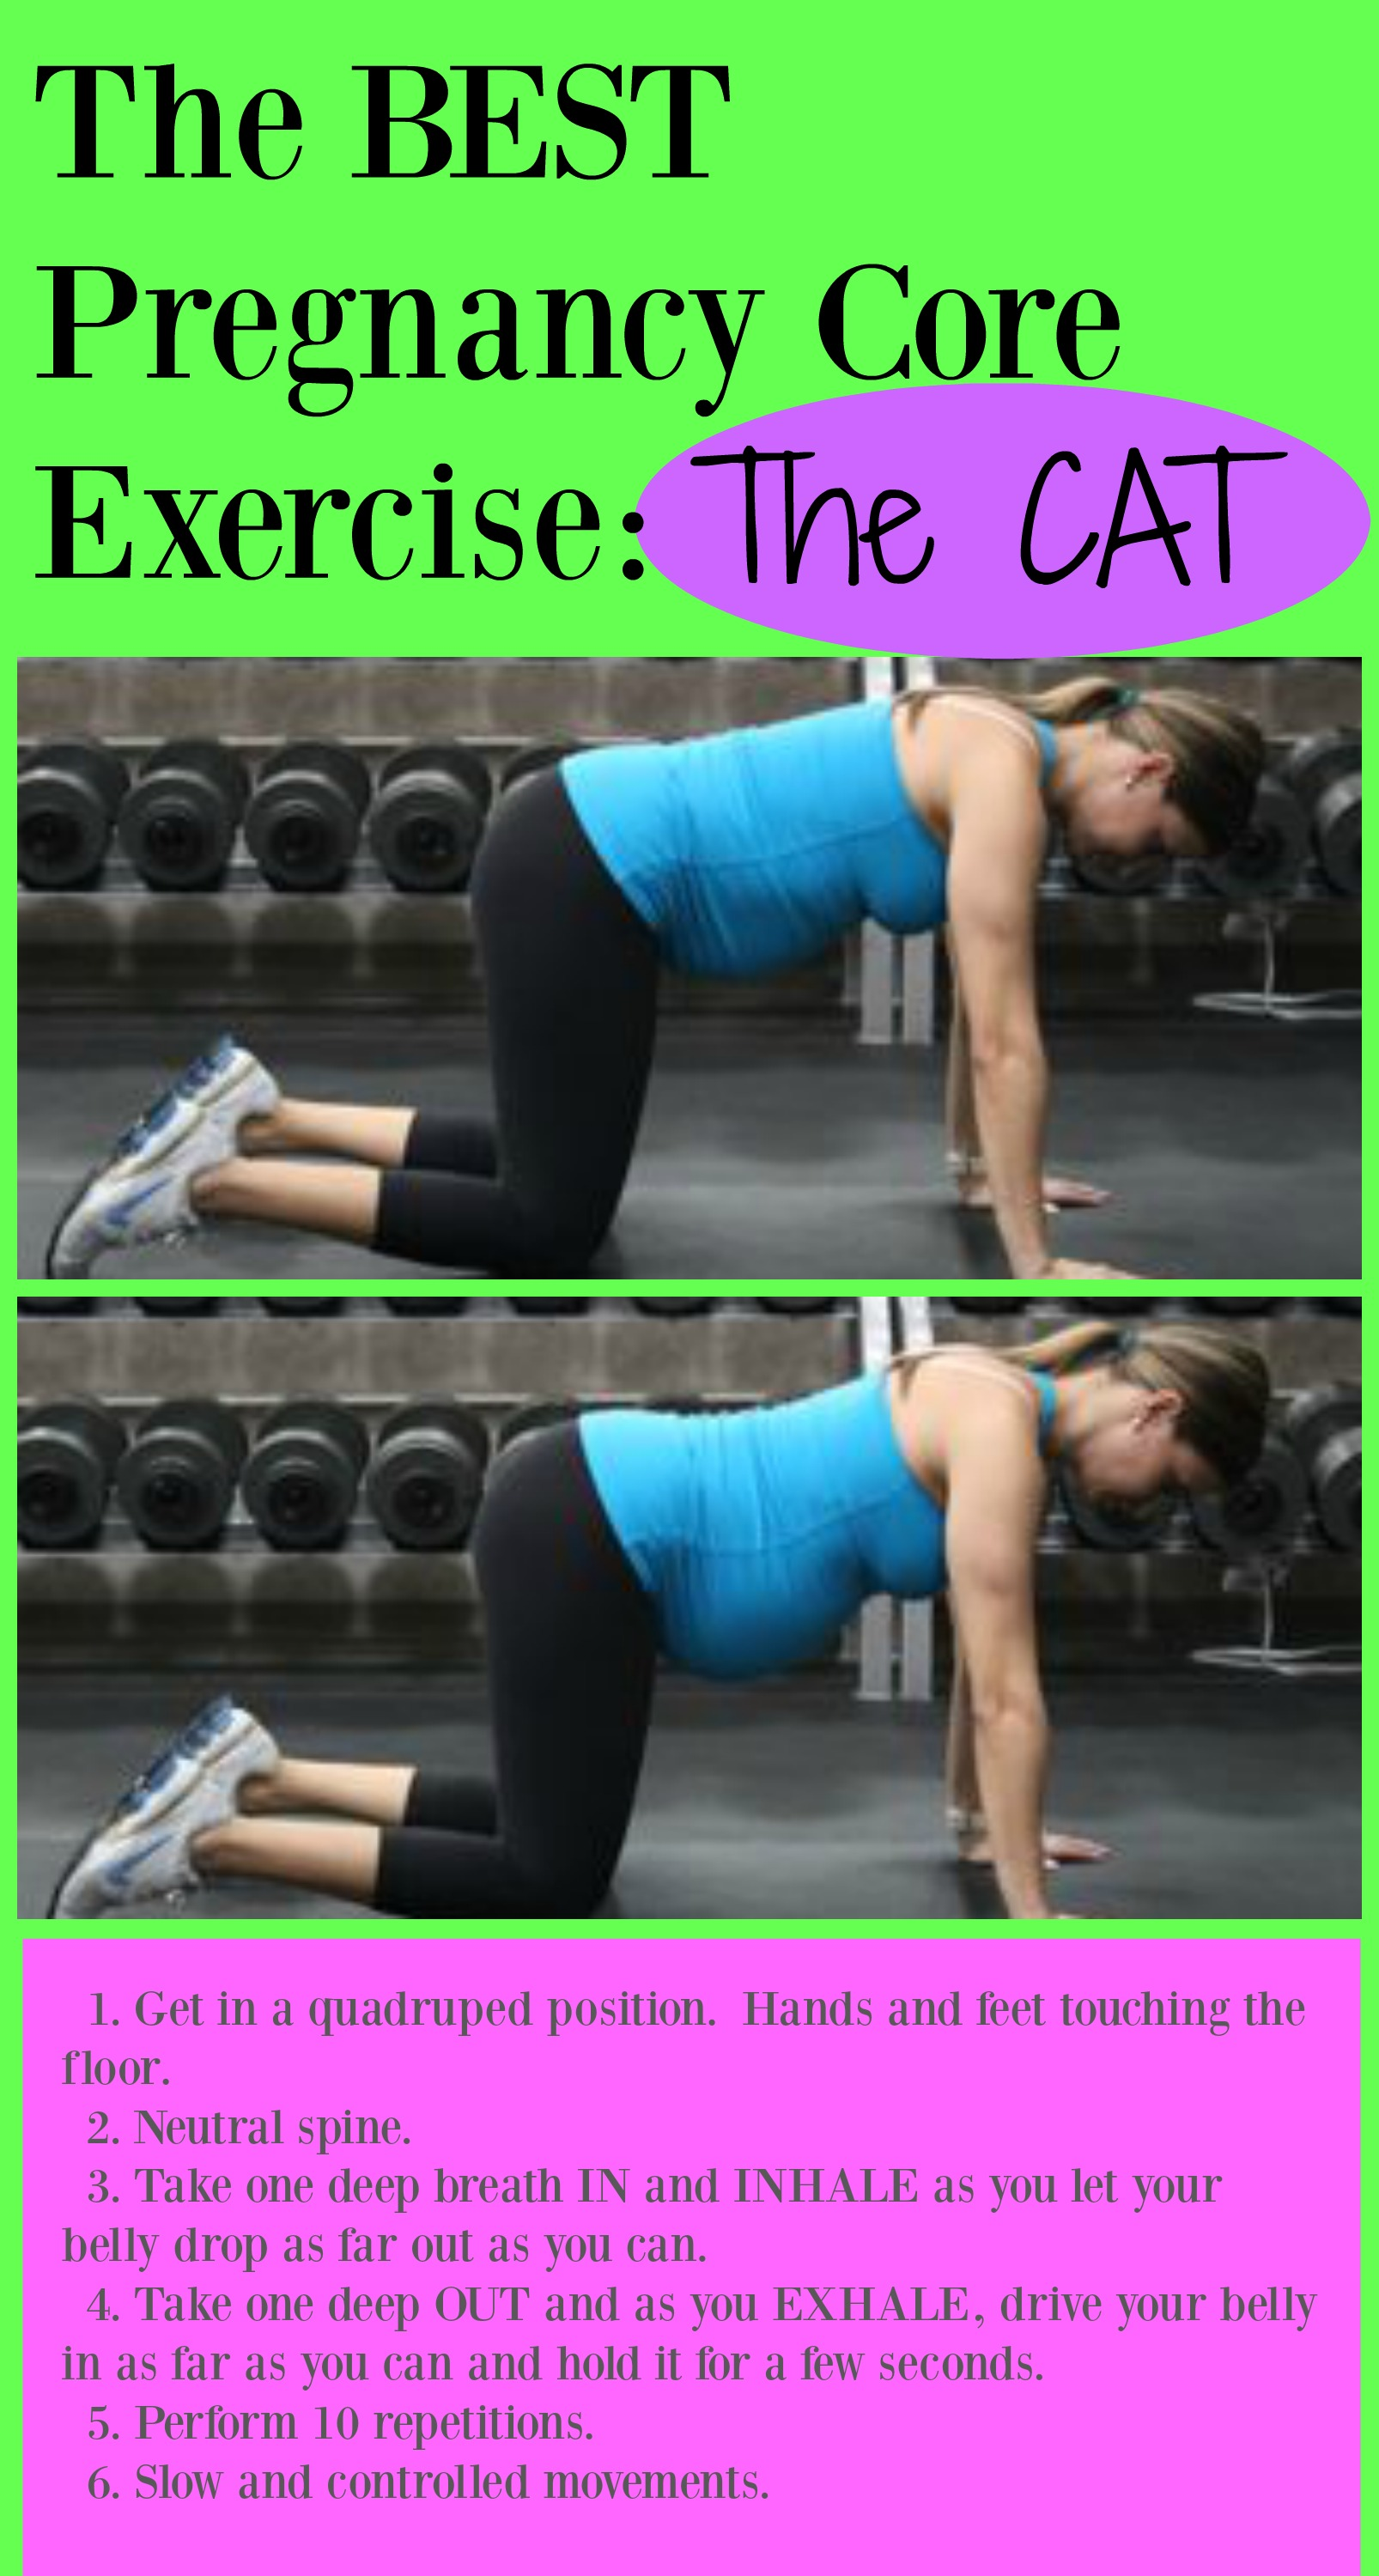 Pregnancy Core Exercises Good Or Bad